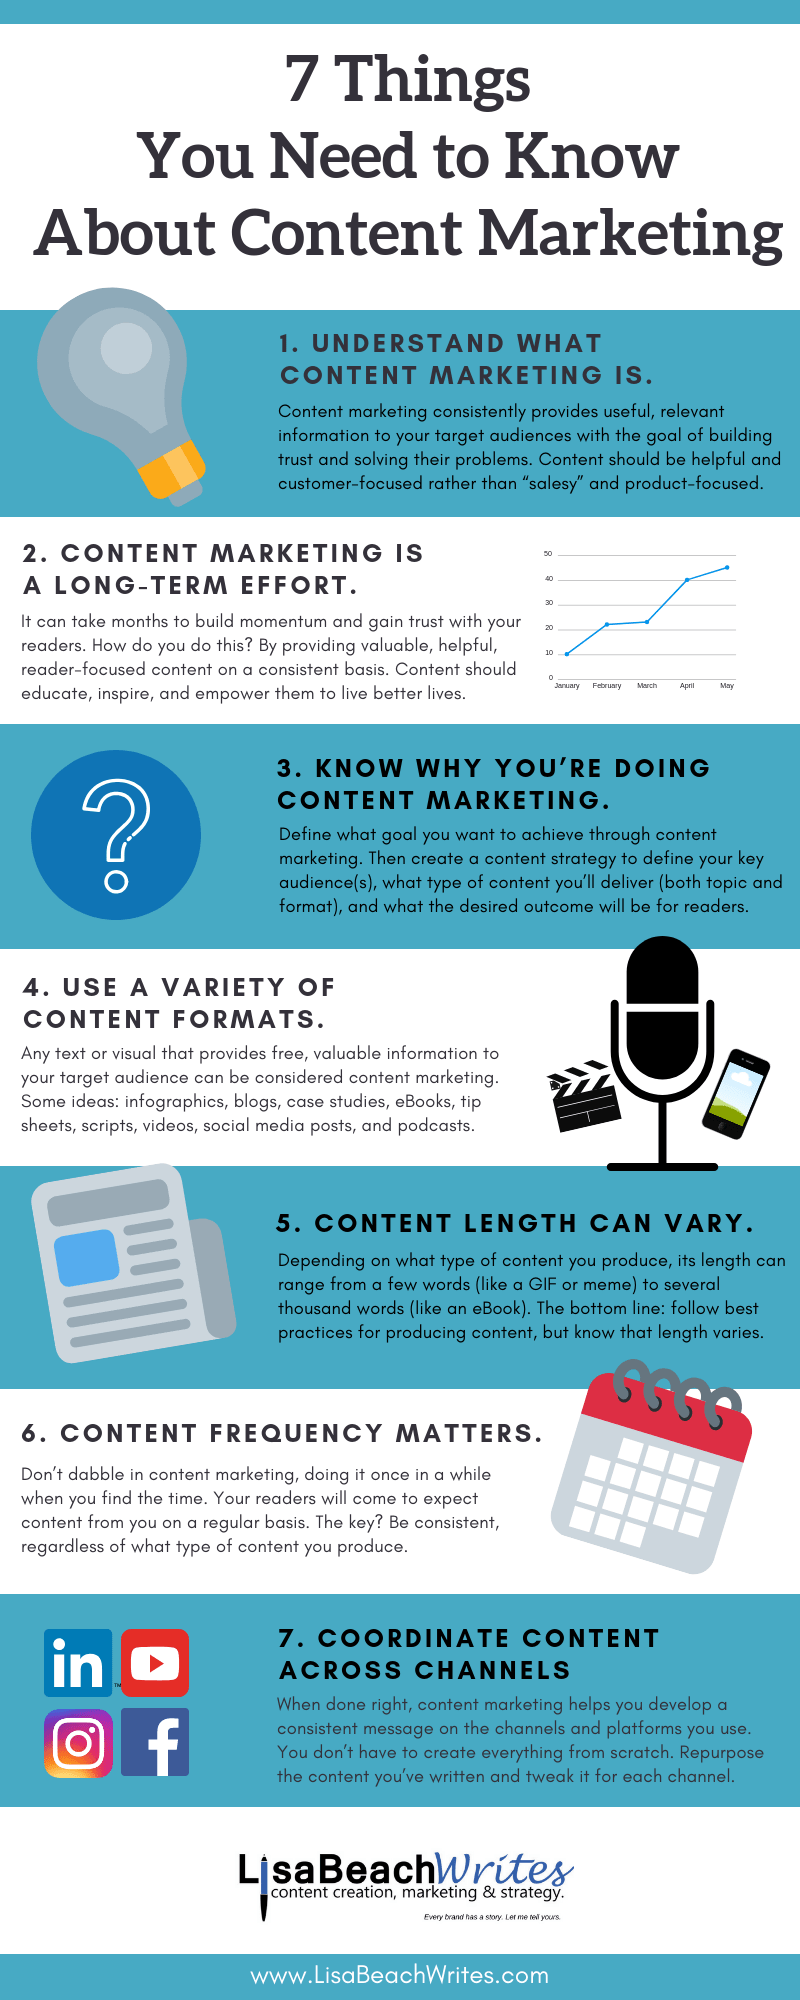 Content Marketing – 7 Things You Need to Know | Lisa Beach